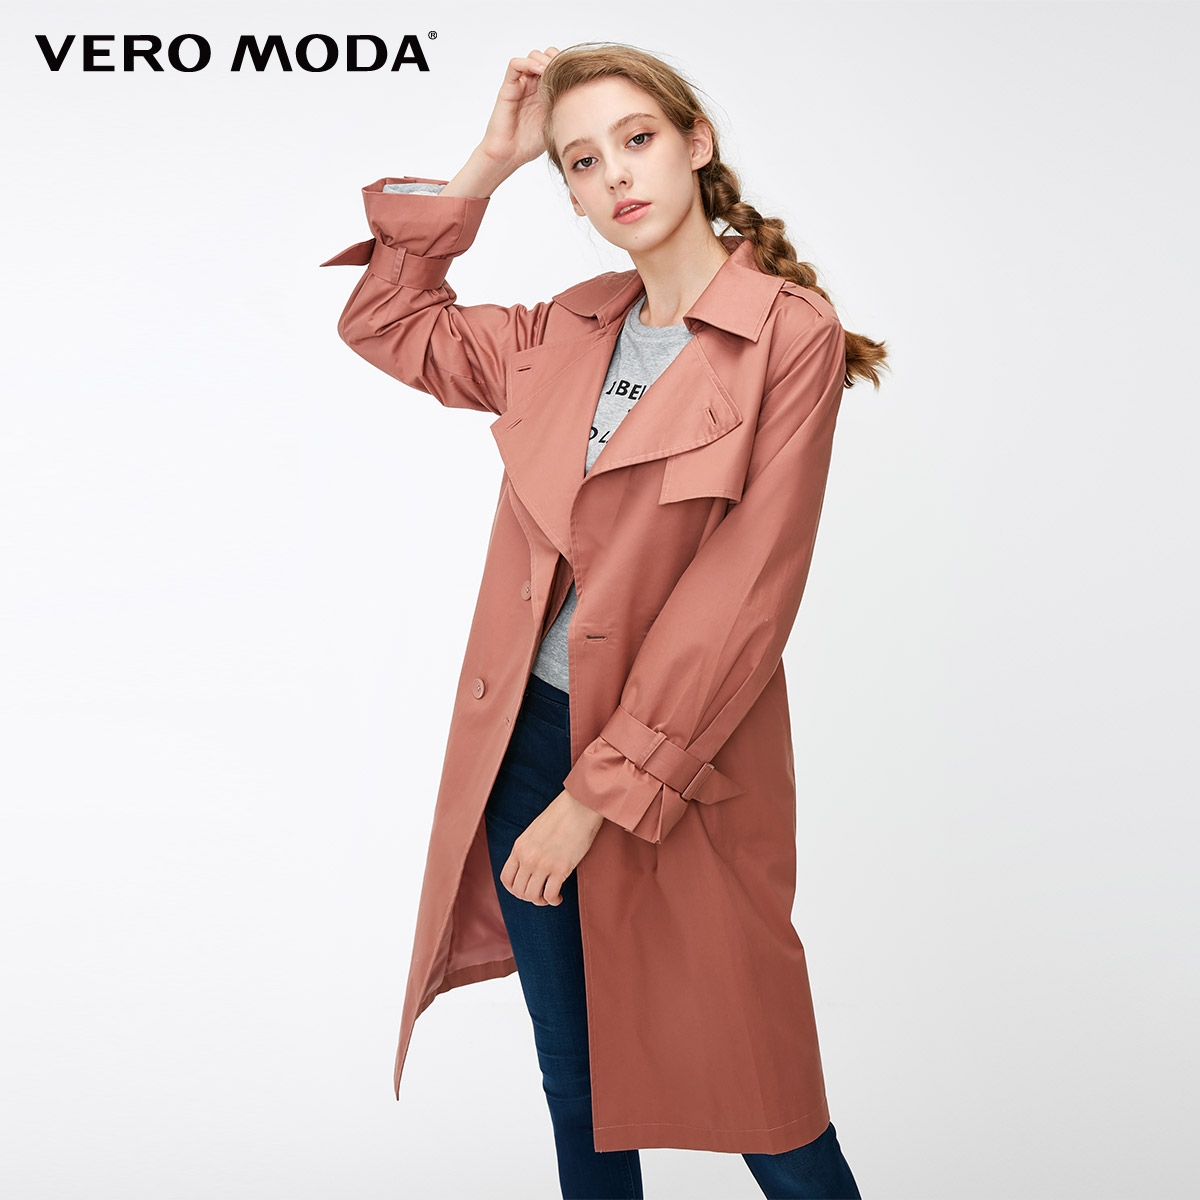 Vero Moda Women's Straight Fit Two-tiered Lapel Minimalist Trench Coat | 318321536 title=